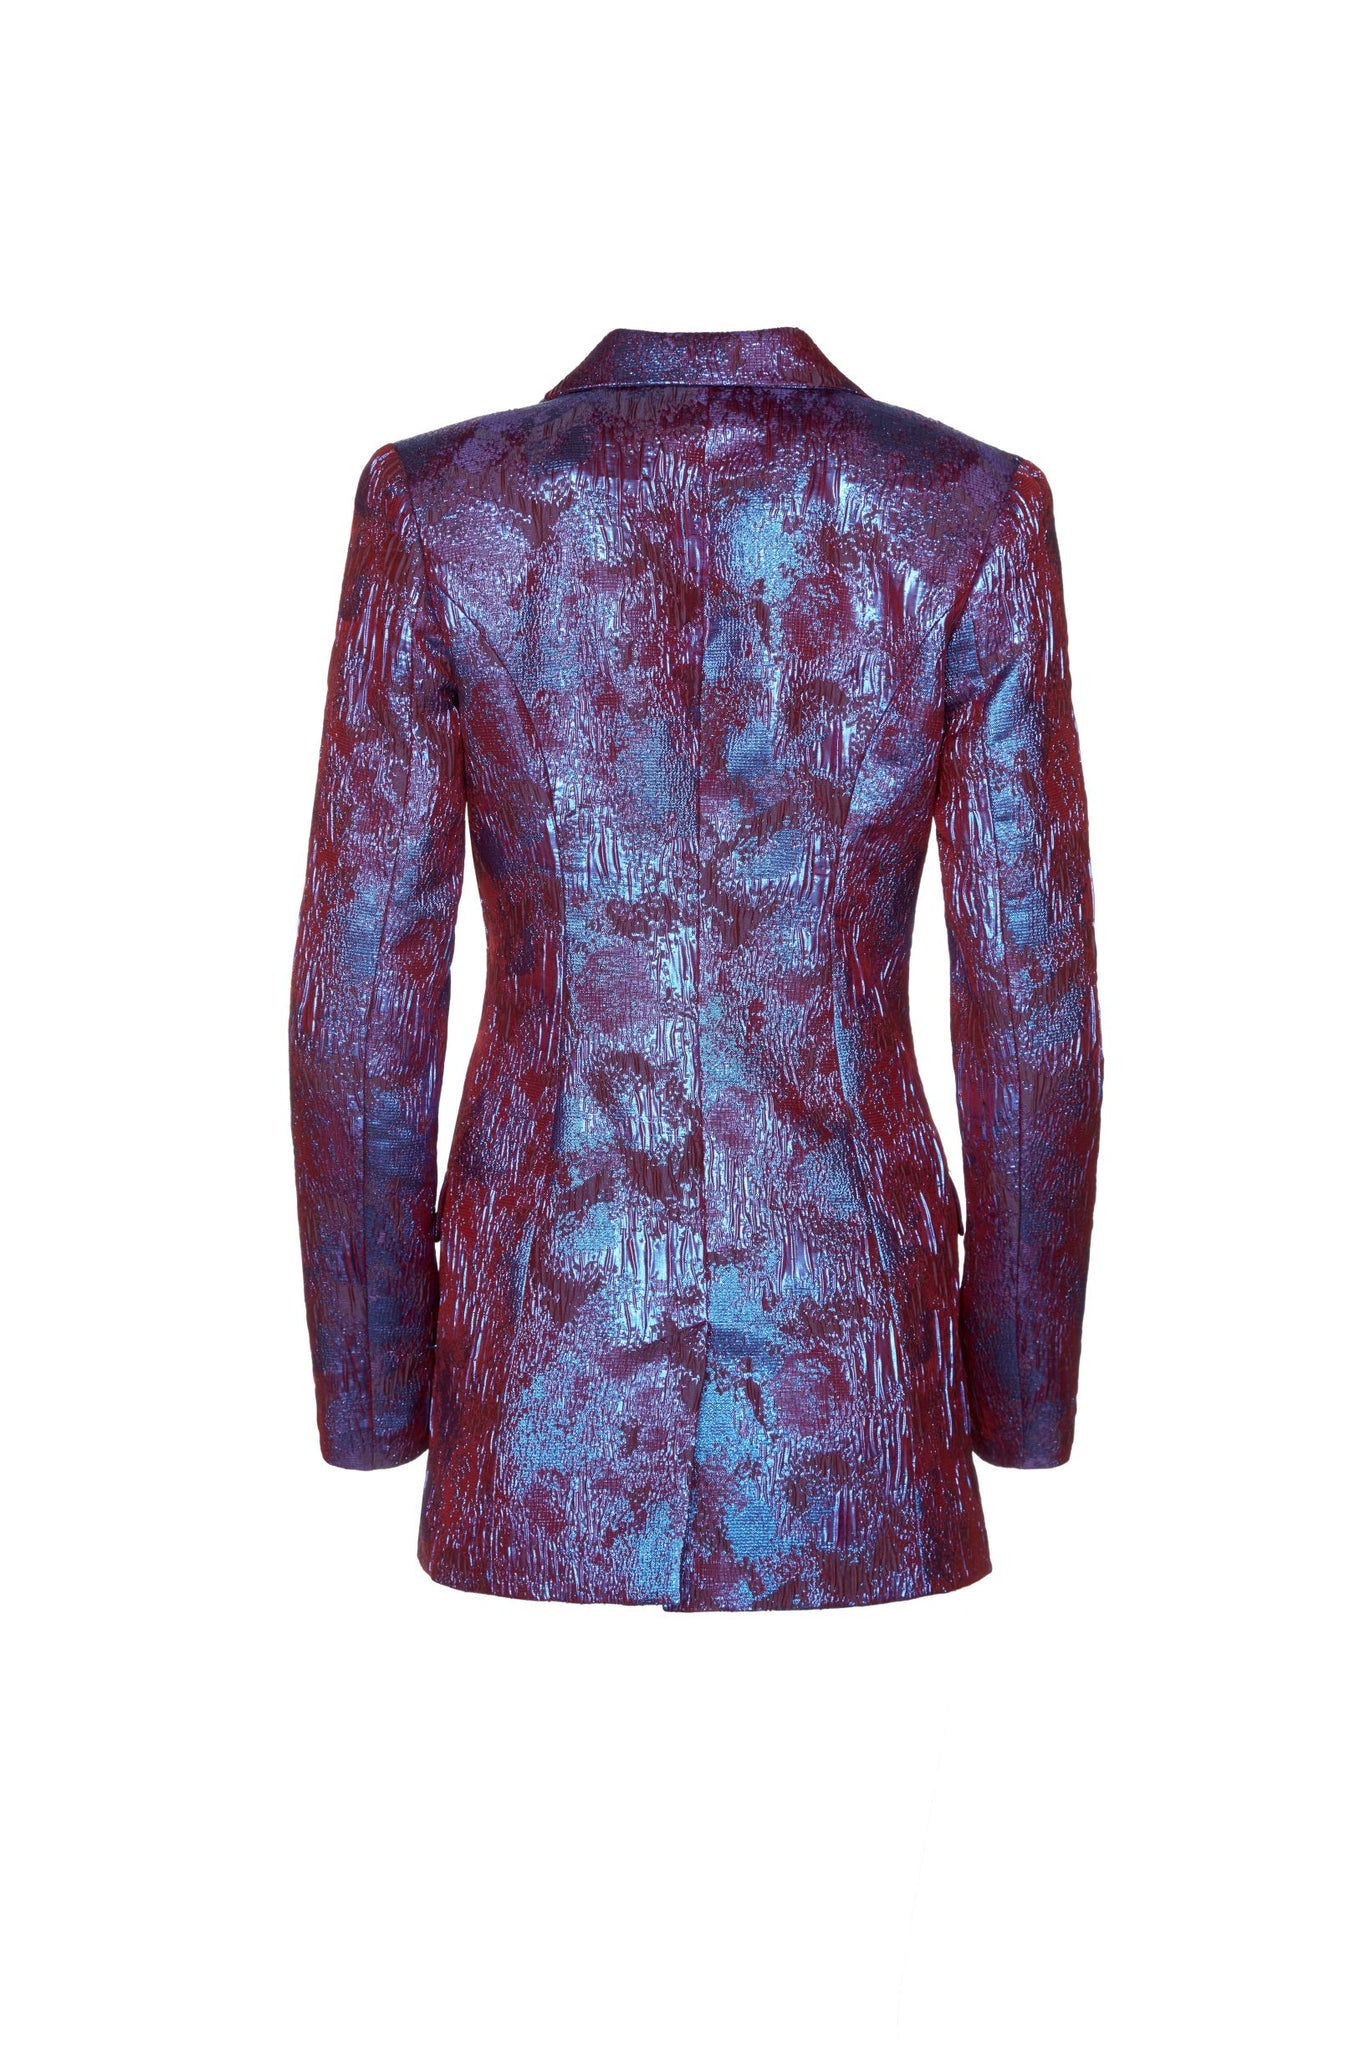 Janet Tailored Blazer - Metallic Magenta Purple